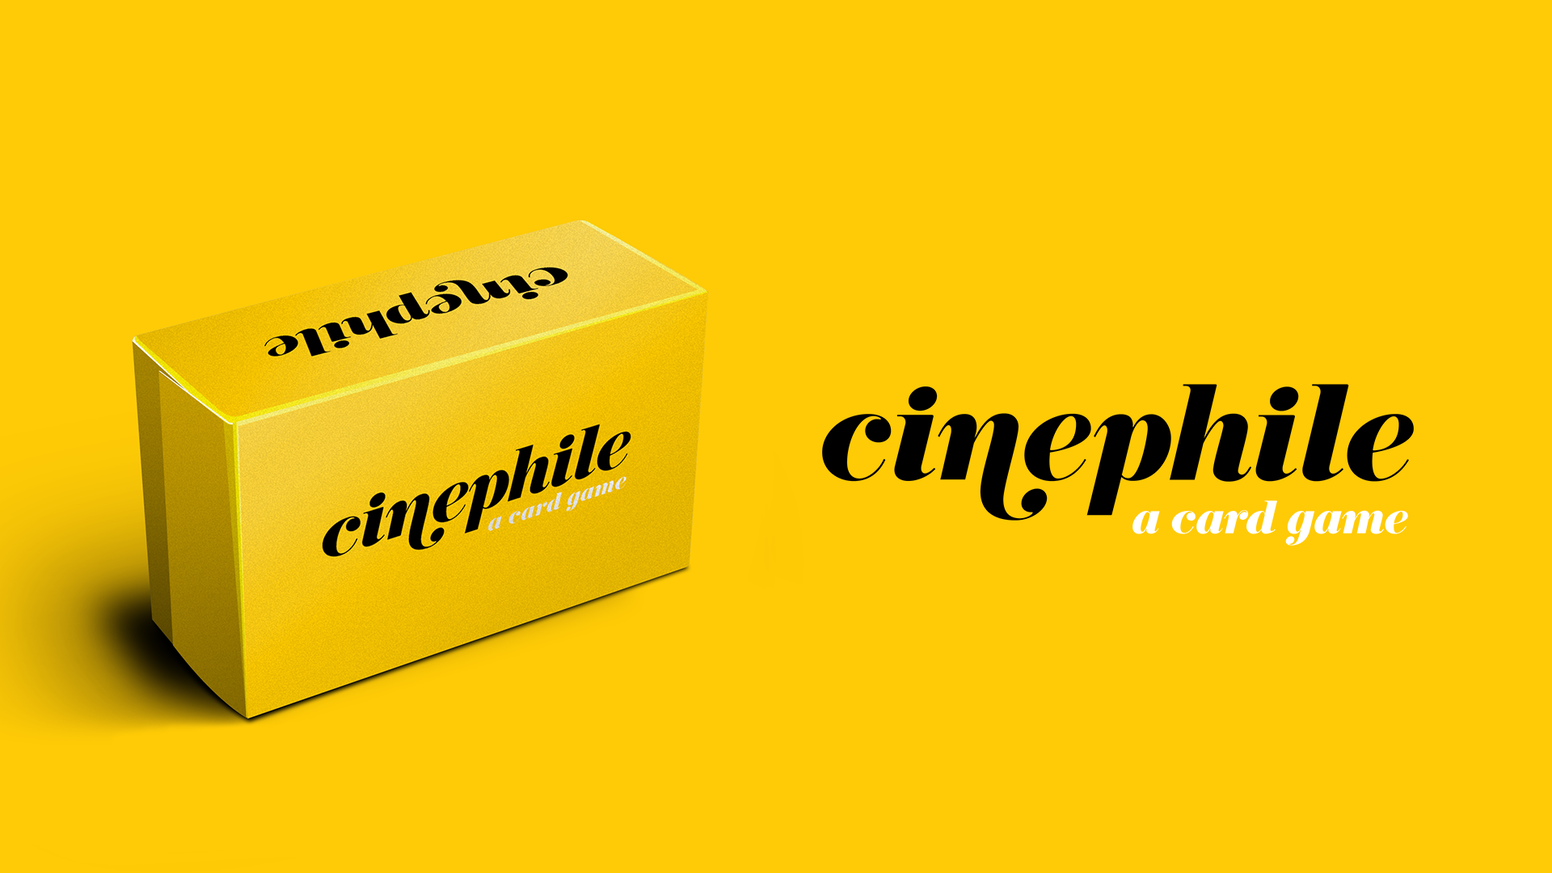 The ultimate card game for film nerds, movie geeks and cinephiles. One deck. 150 cards. Multiple ways to play.